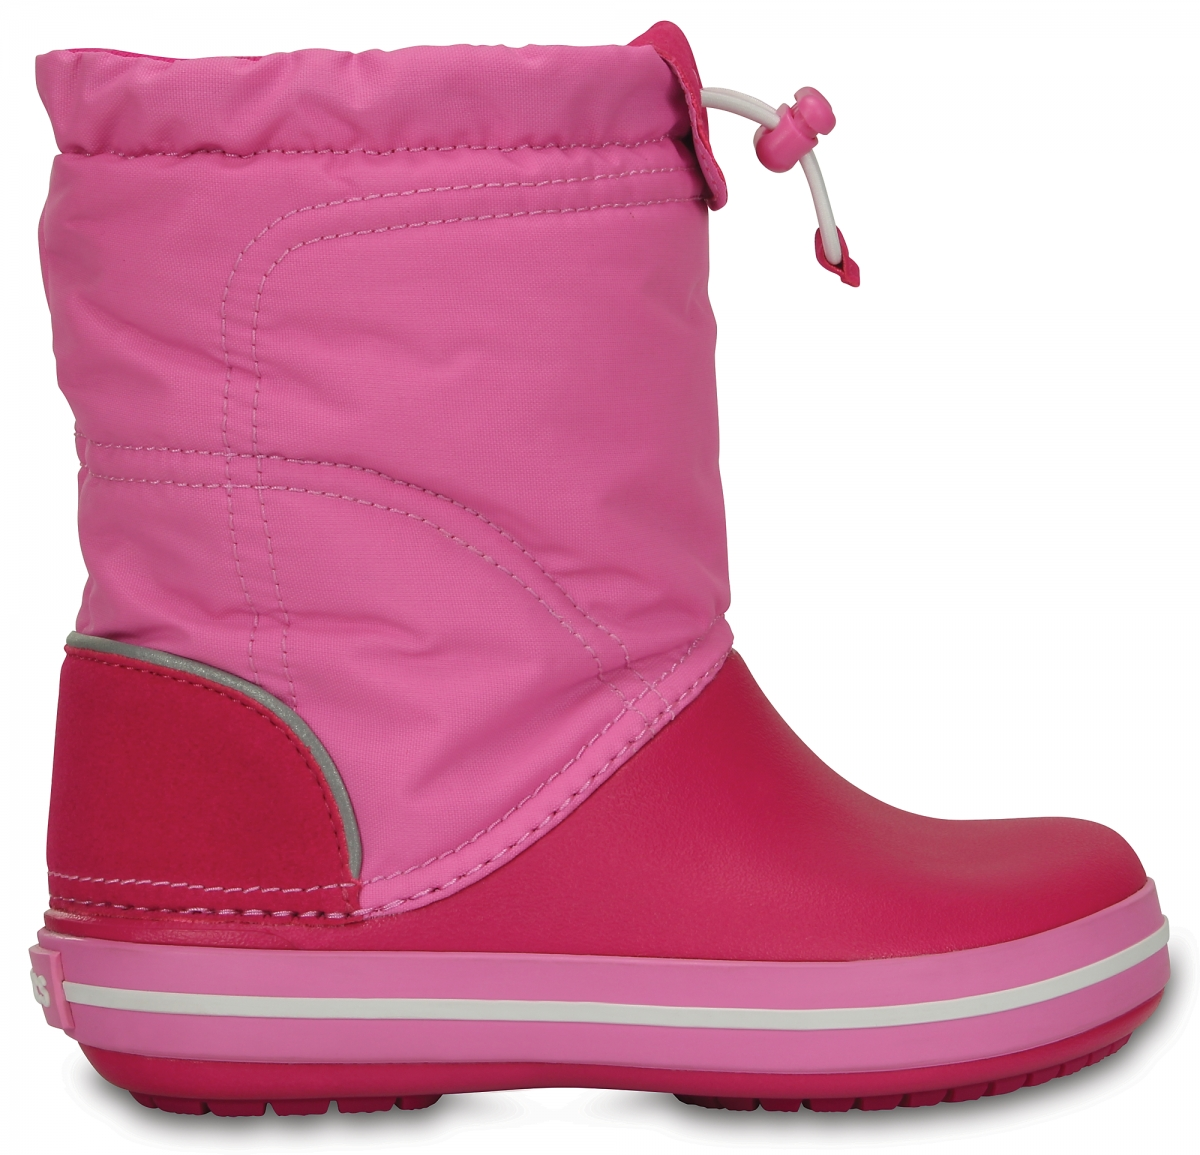 Crocs Crocband LodgePoint Boot Kids - Candy Pink/Party Pink, J3 (34-35)